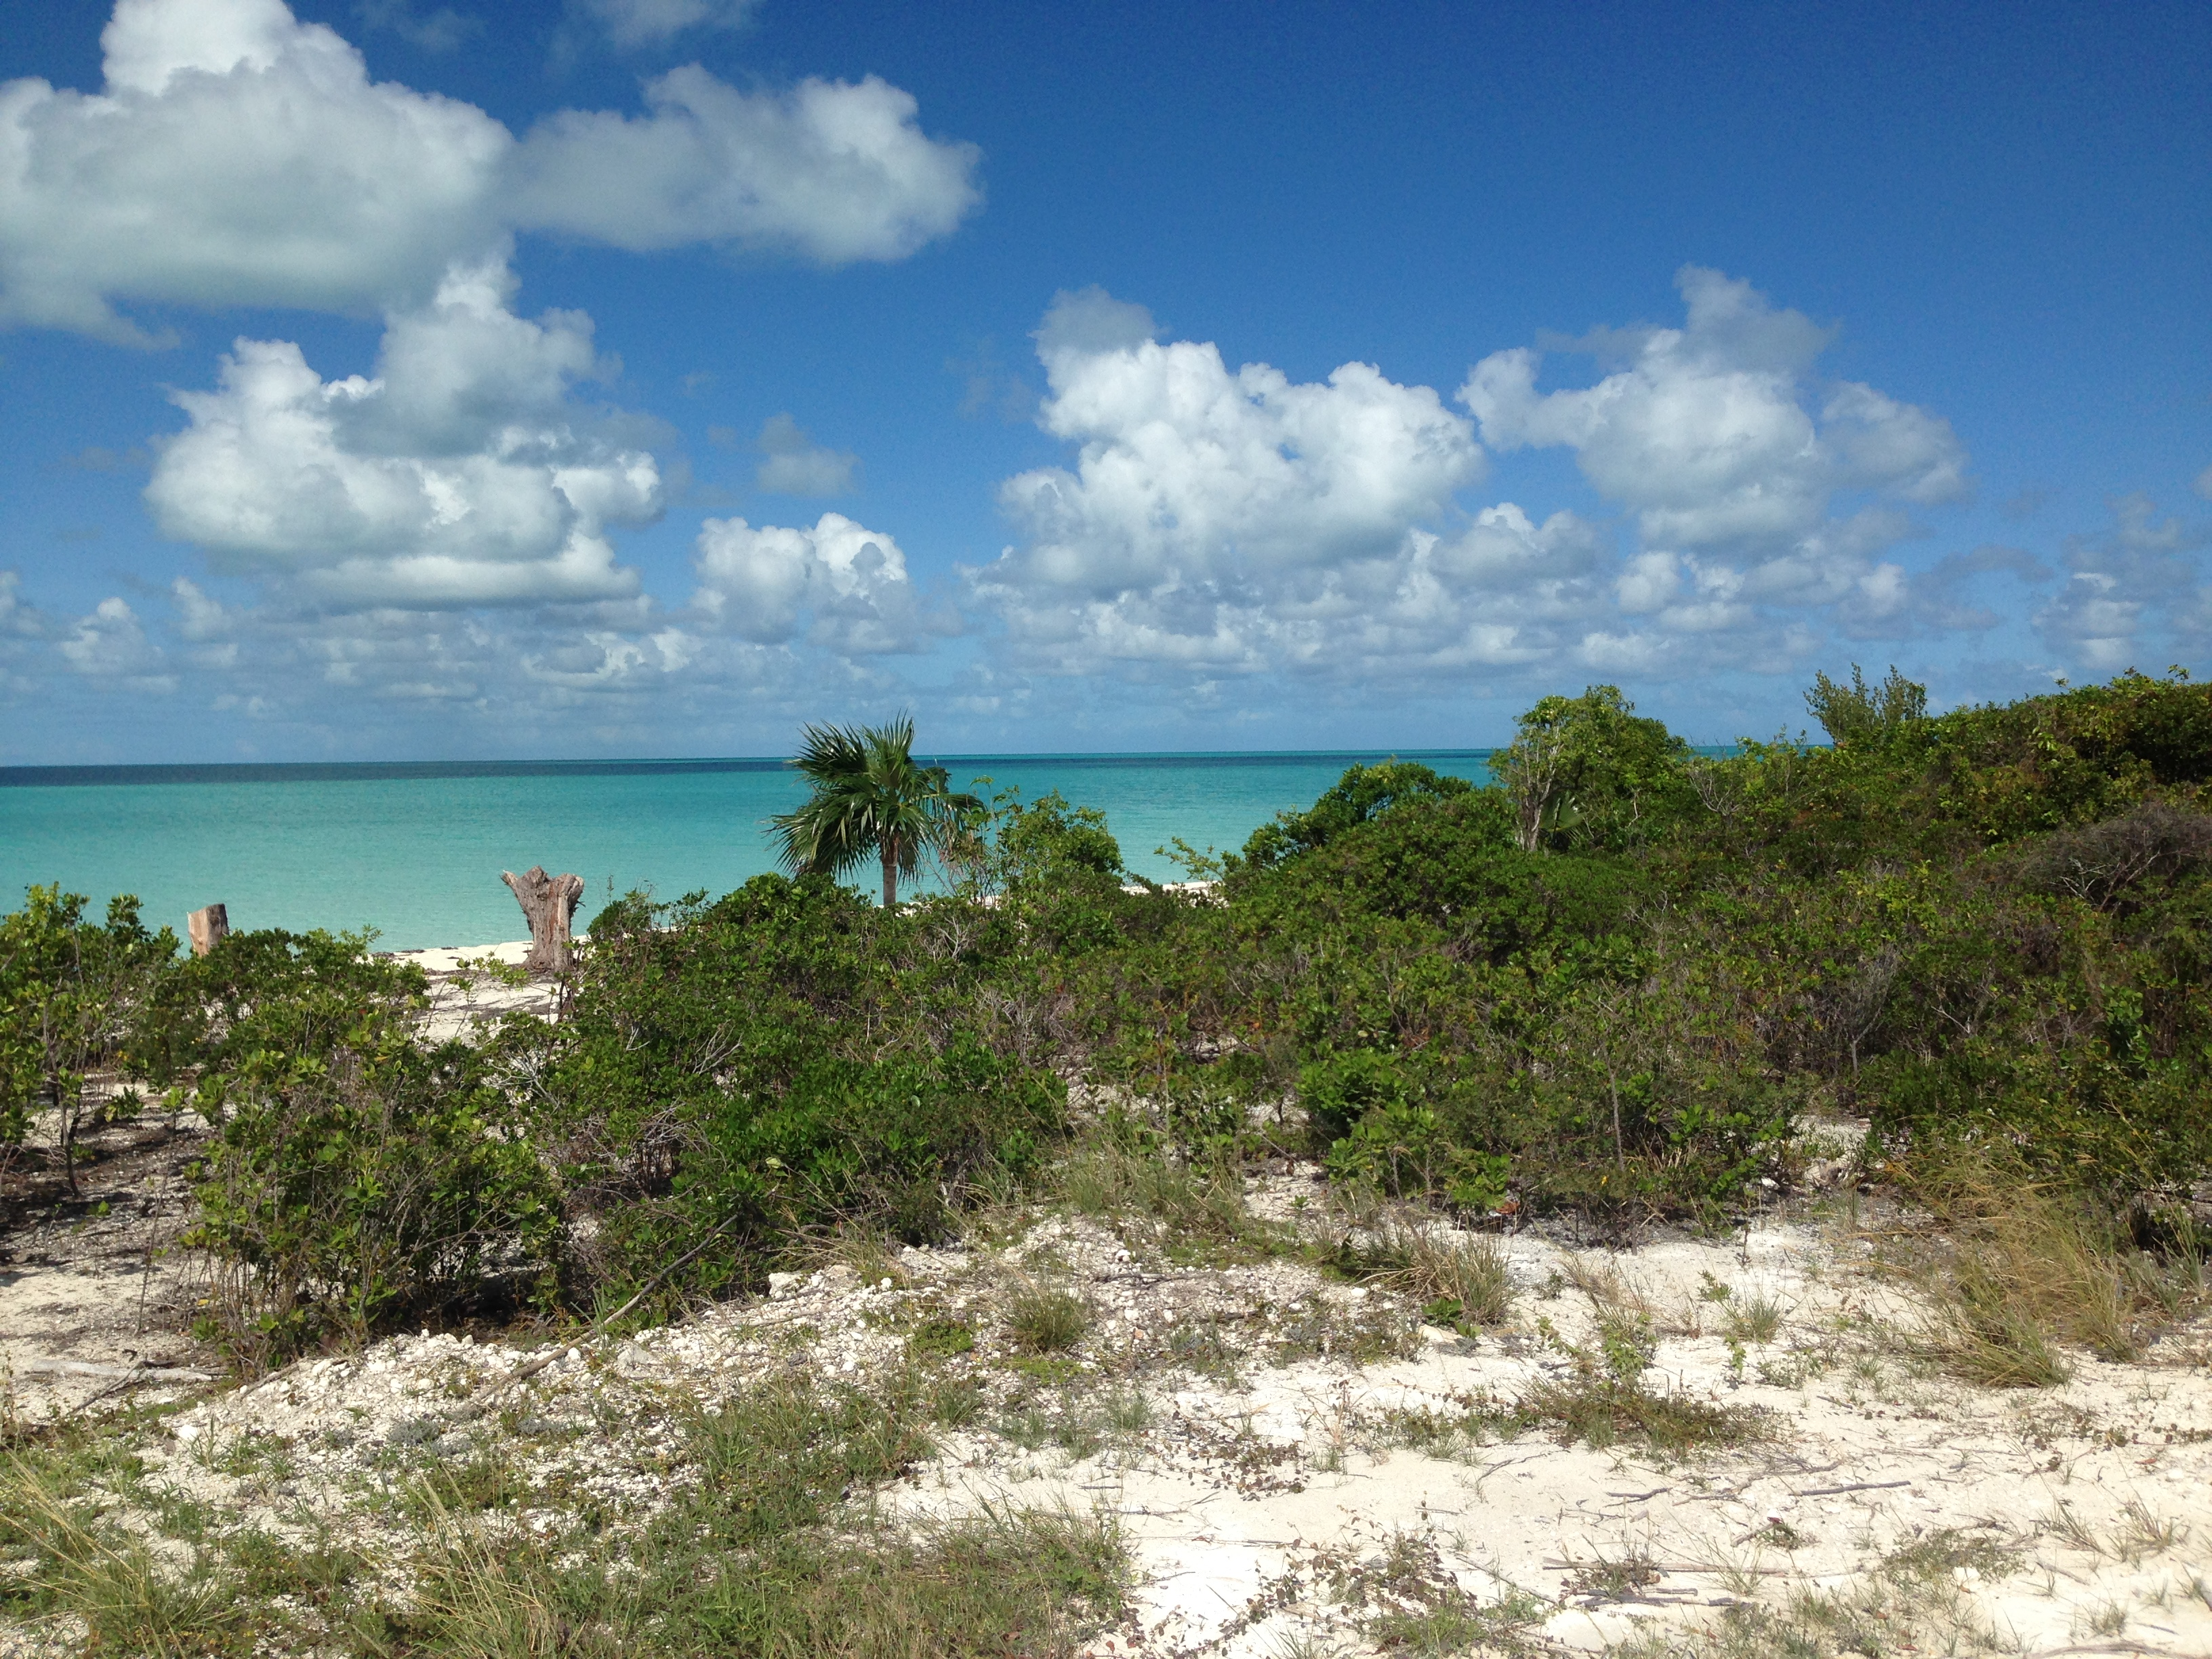 Mission Flight to Eleuthera, The Bahamas – Great Commission